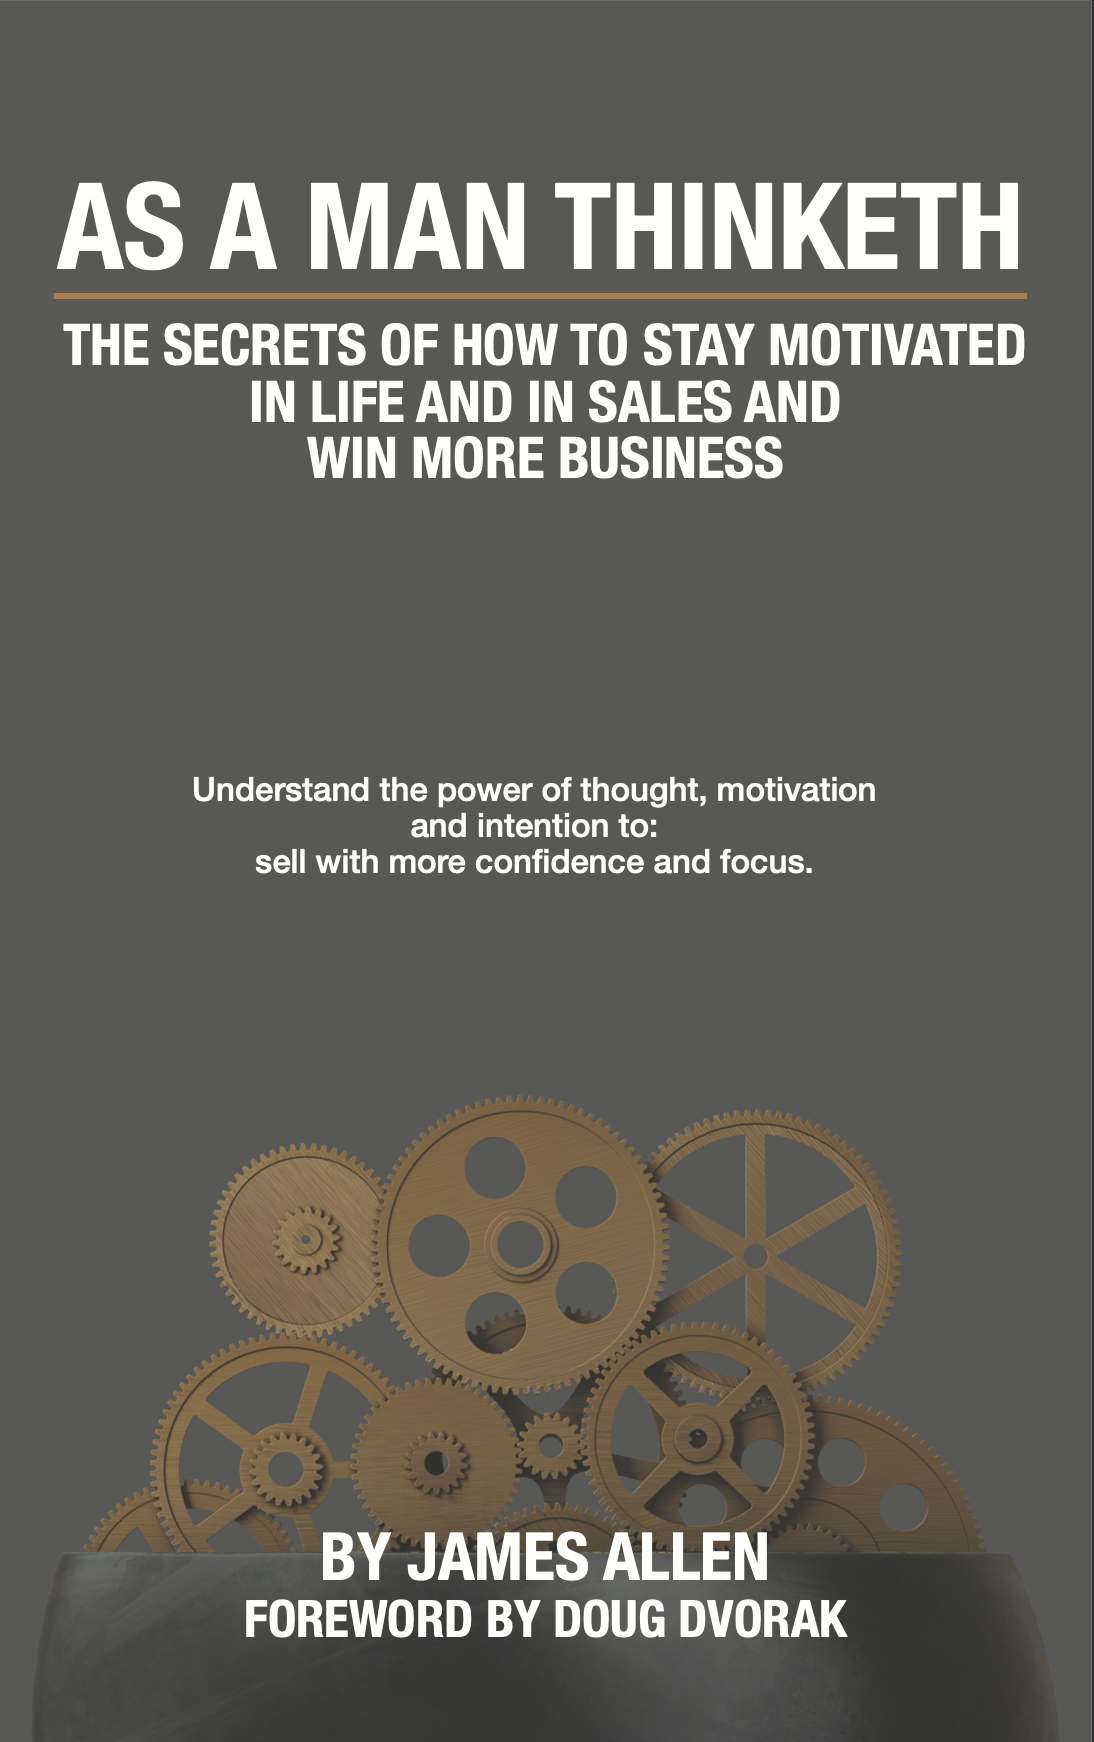 As-a-man-thinketh-in-sales-book-cover